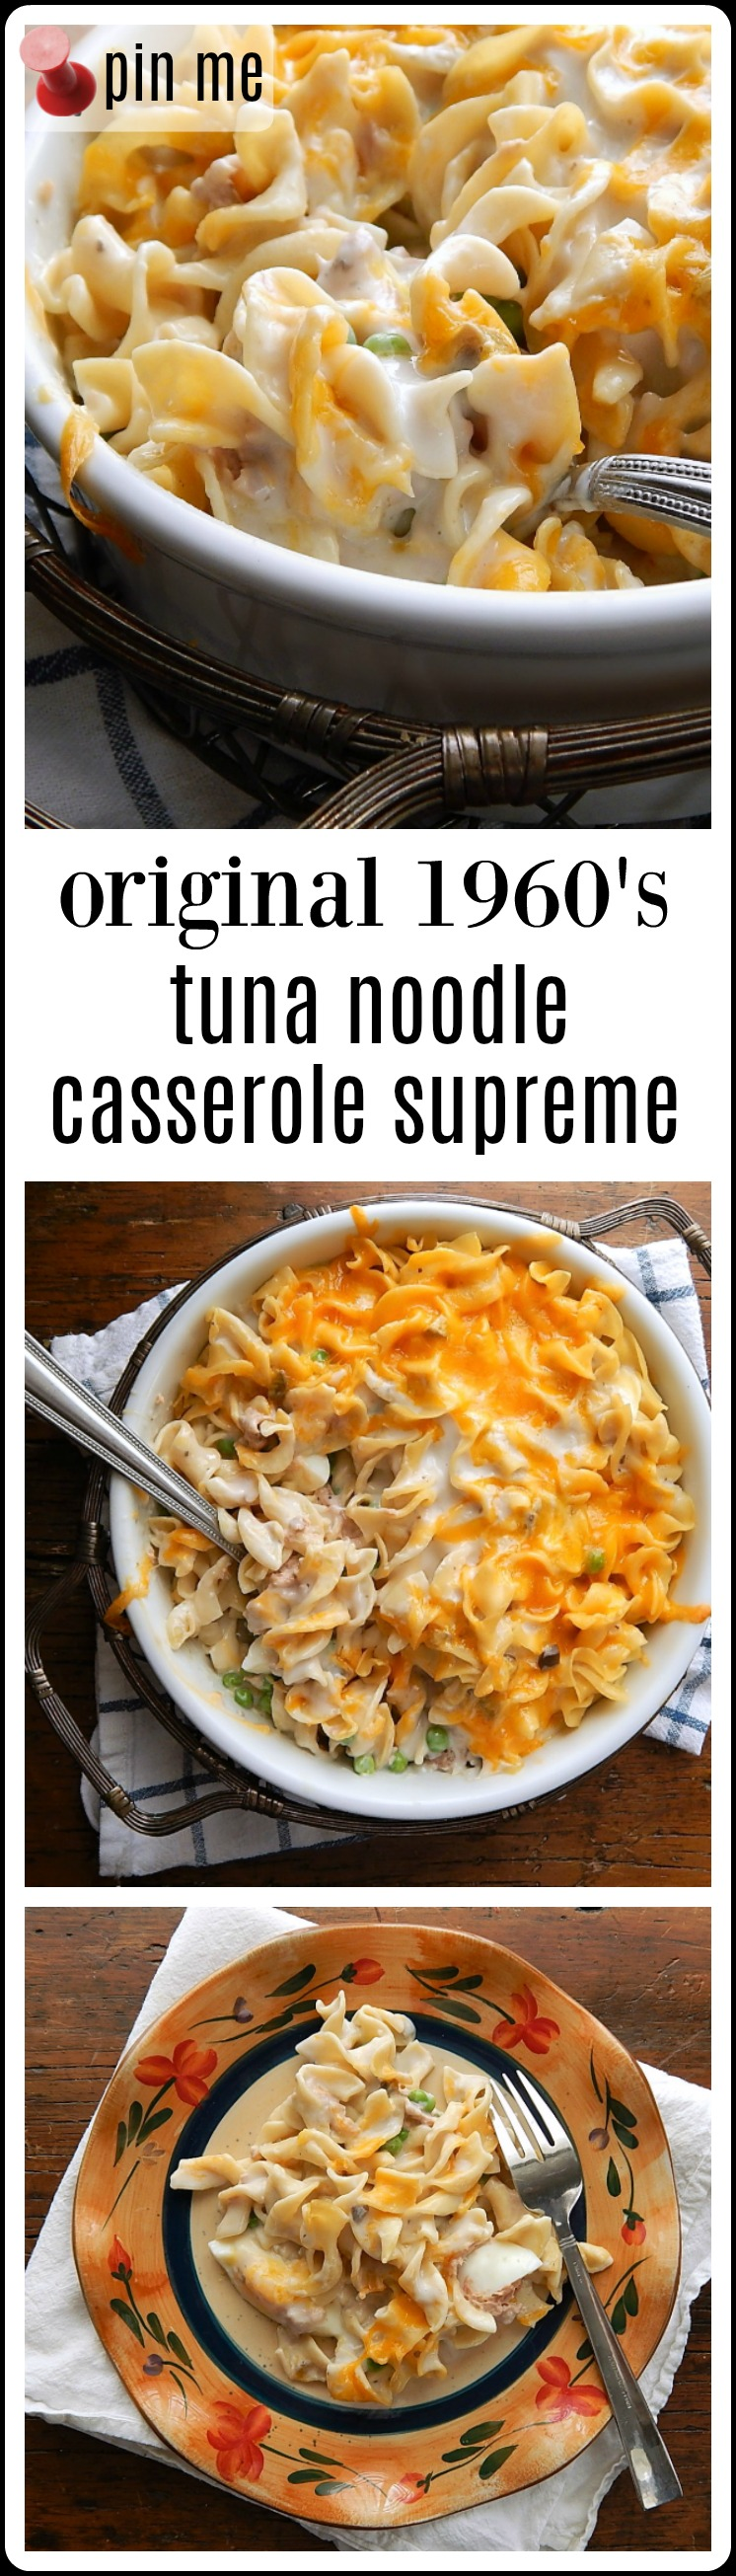 Meta Given's Tuna Noodle Casserole Supreme - this is the original 1960's Tuna Casserole, with or without potato chips. This is how it is supposed to be made! Creamy & delish! #TunaNoodleCasserole #TunaNoodleCasseroleSupreme